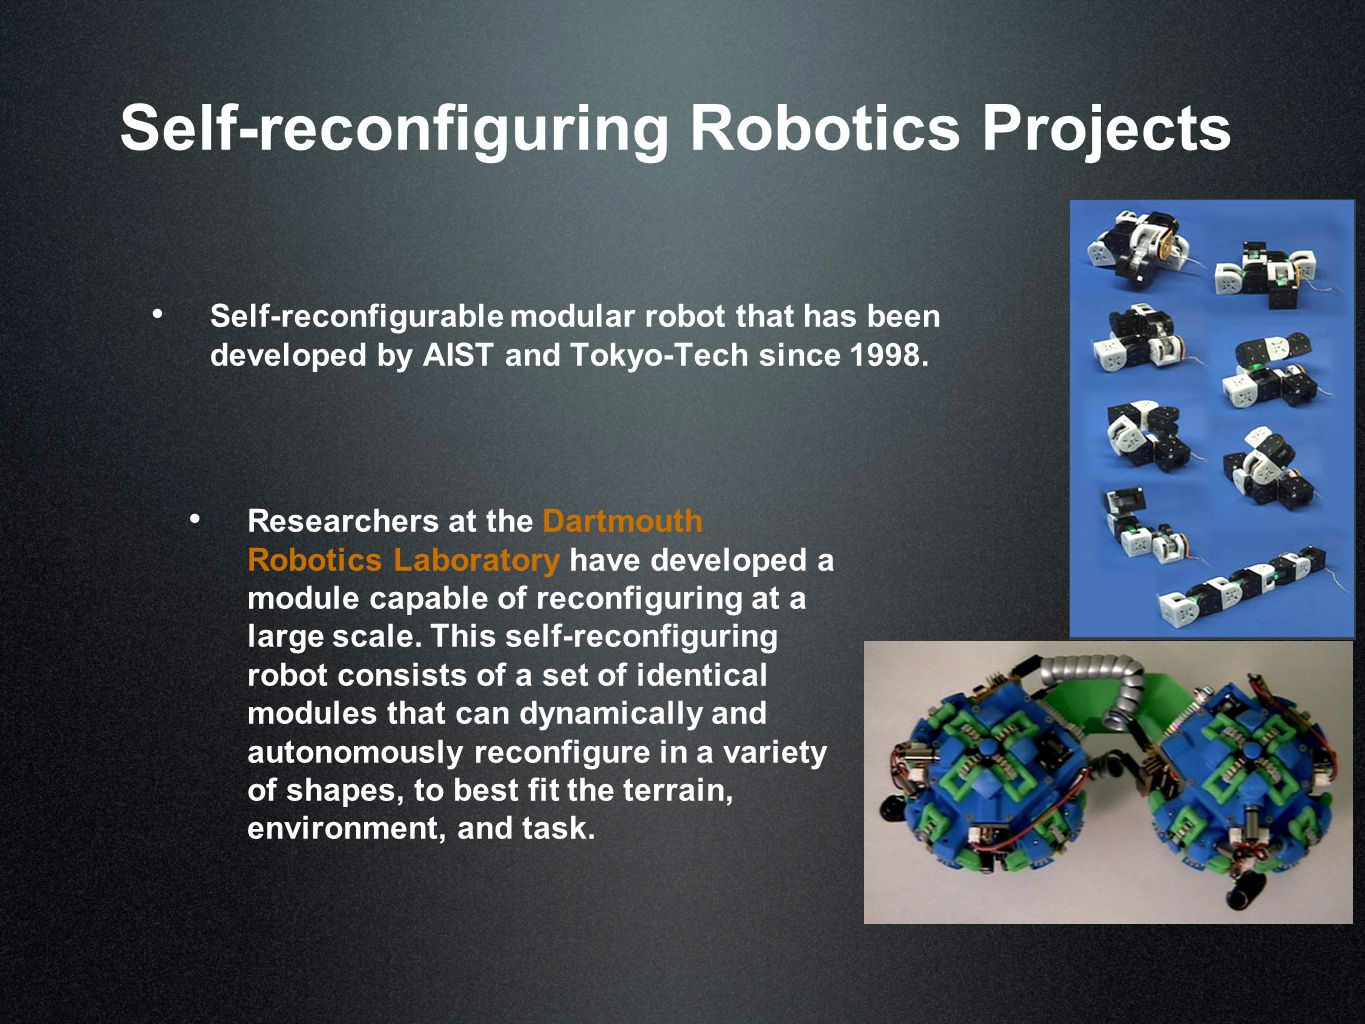 Self-reconfiguring Robotics Projects Self-reconfigurable modular robot that has been developed by AIST and Tokyo-Tech since 1998.